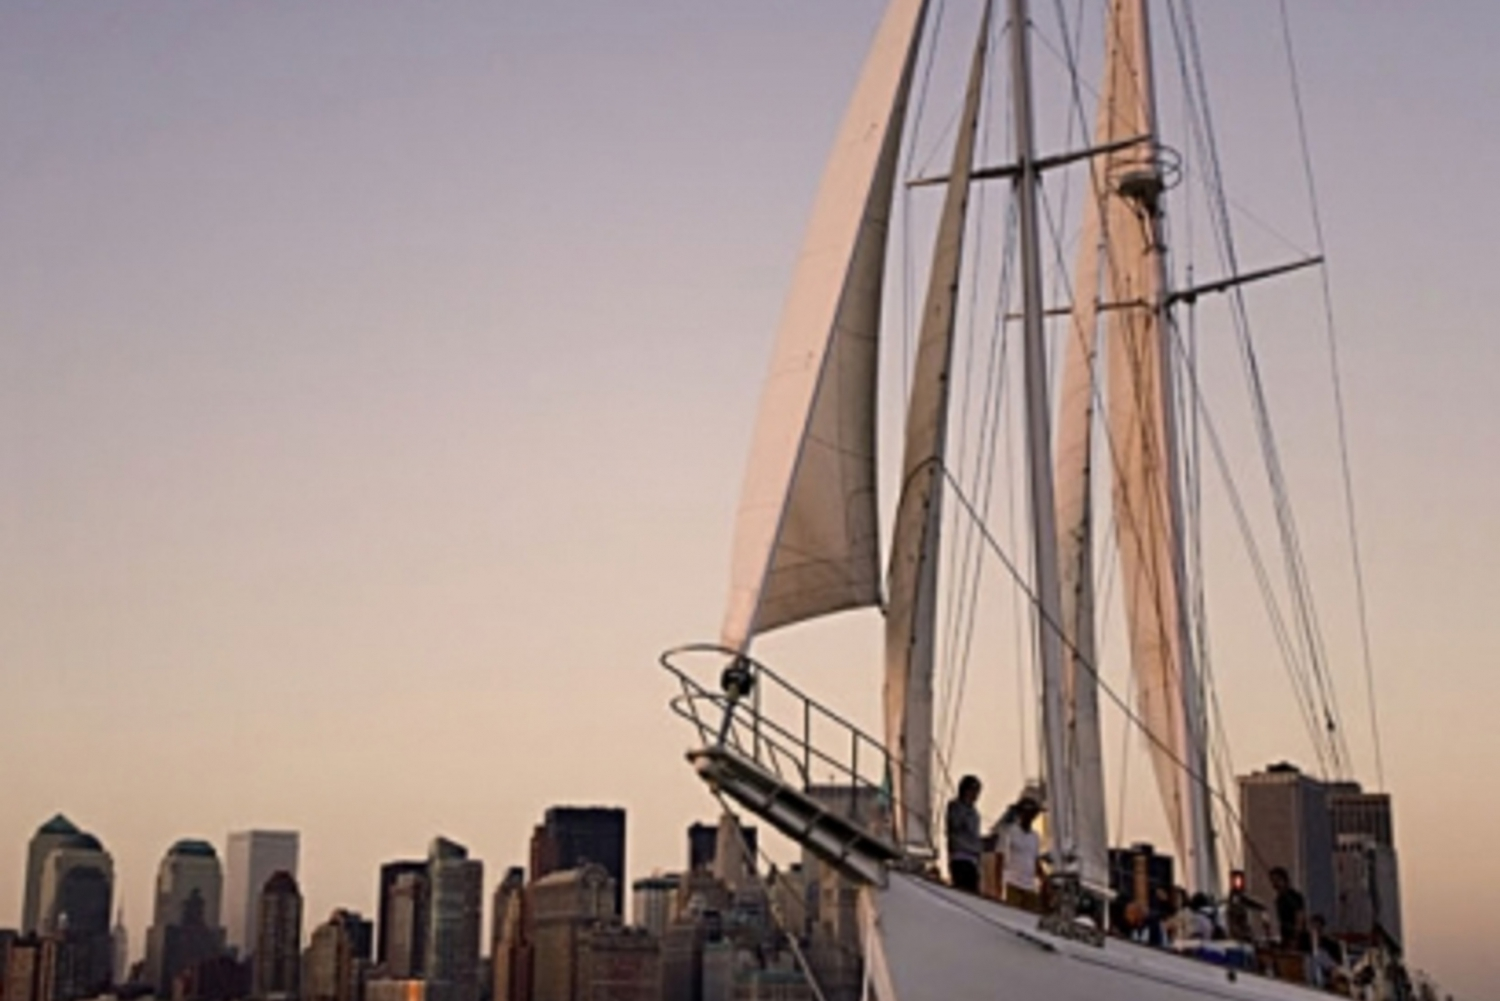 City Lights Sail Aboard the Classic Schooner Shearwater